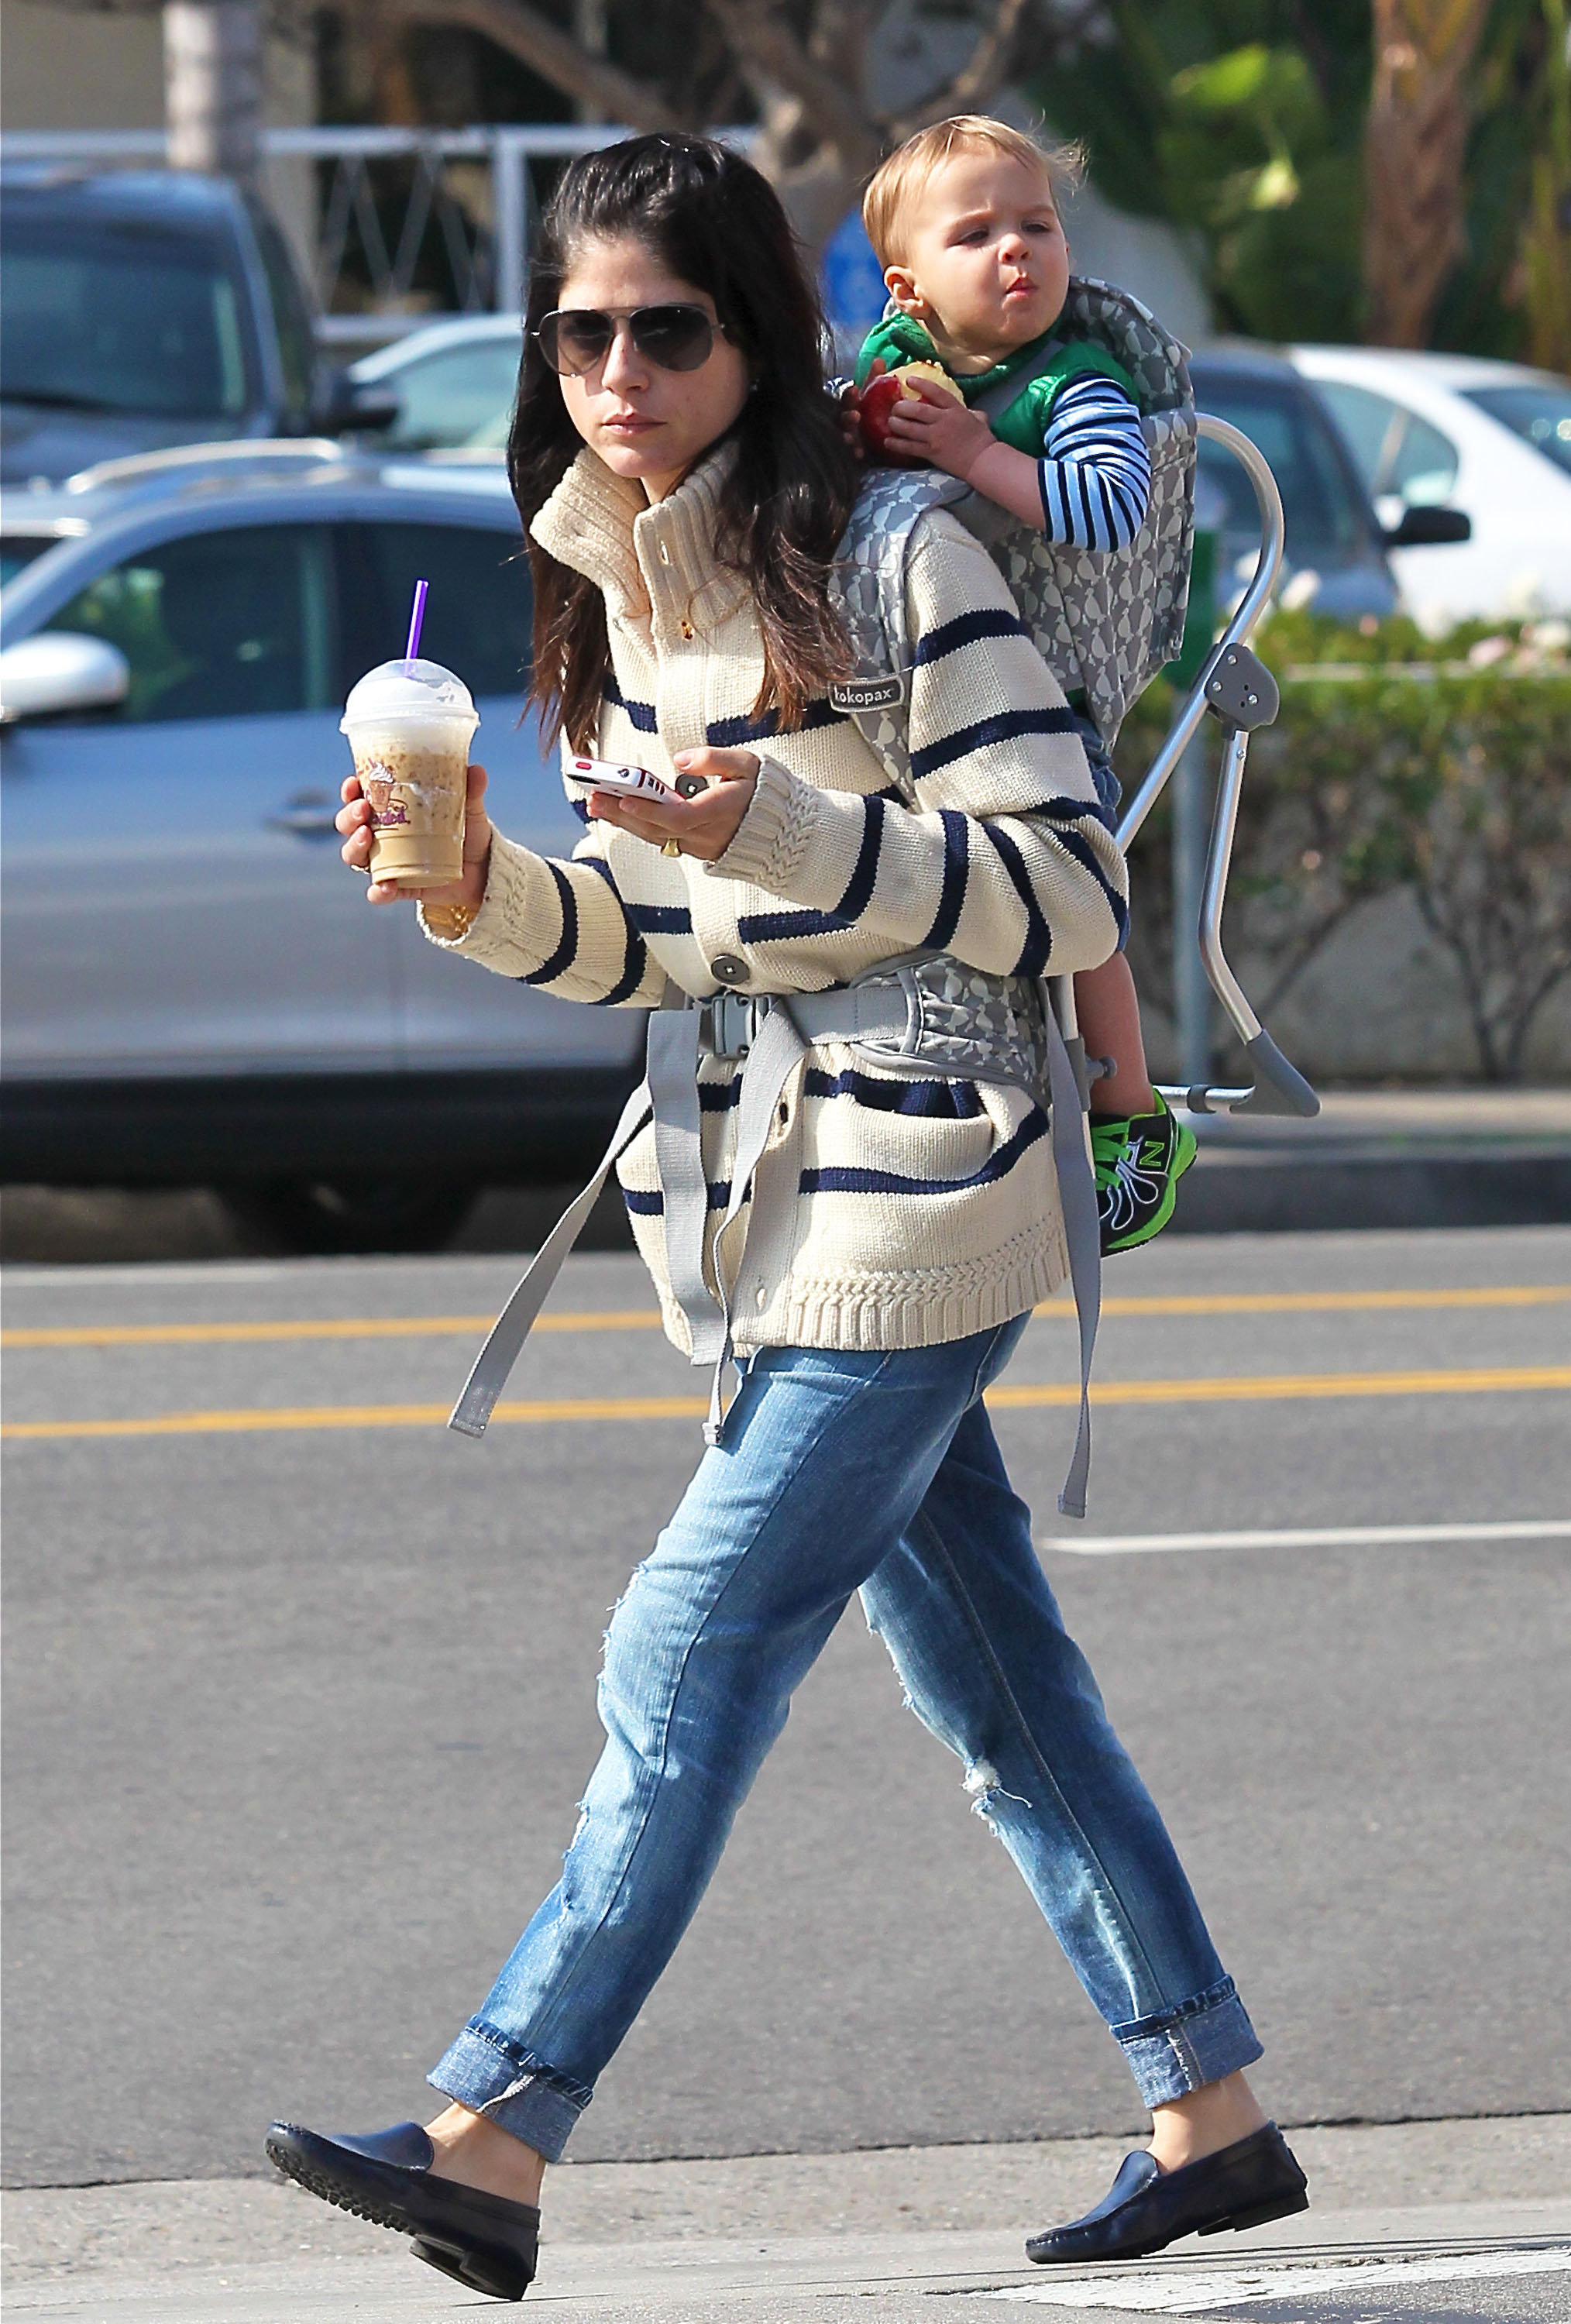 Selma Blair carried Arthur Bleick on her back for an outing in LA.